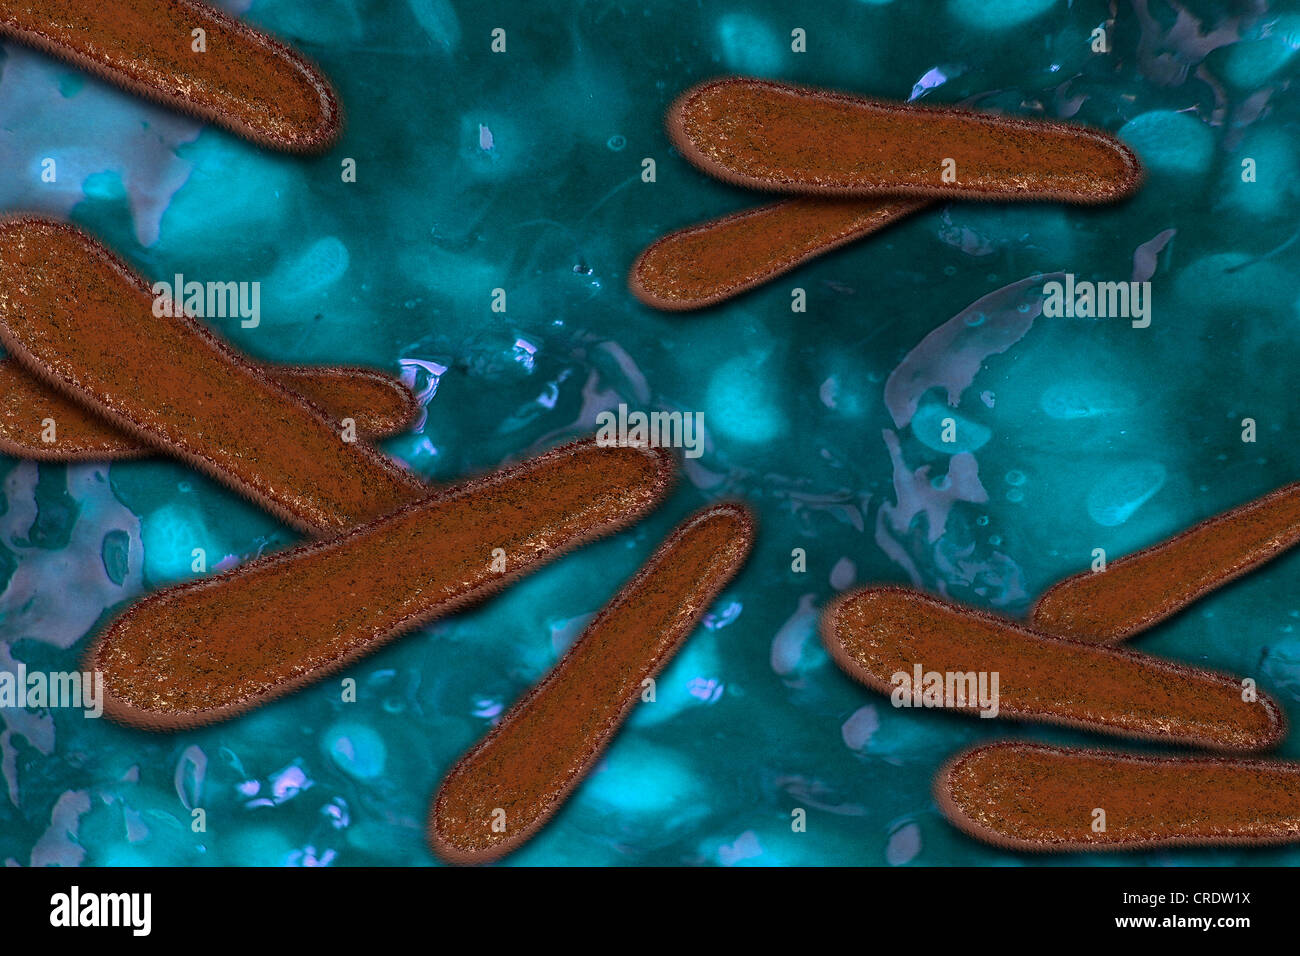 Bacteria as pathogens in the human body, illustration - Stock Image